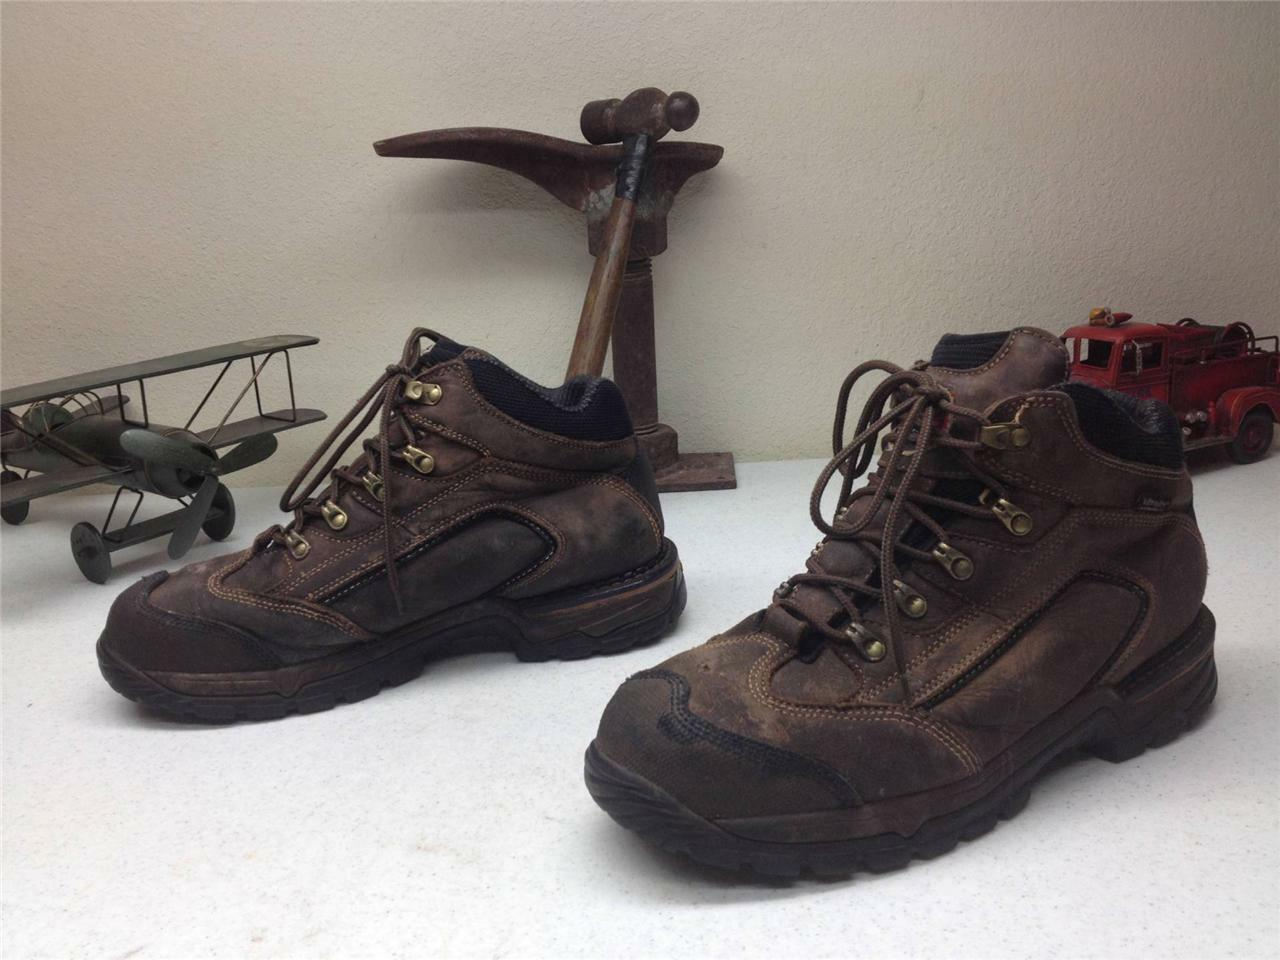 BROWN LEATHER LACE UP ULTRA DRY WATERPROOF STEEL STEEL STEEL TOE RED WING BOOTS  10 M c36e21